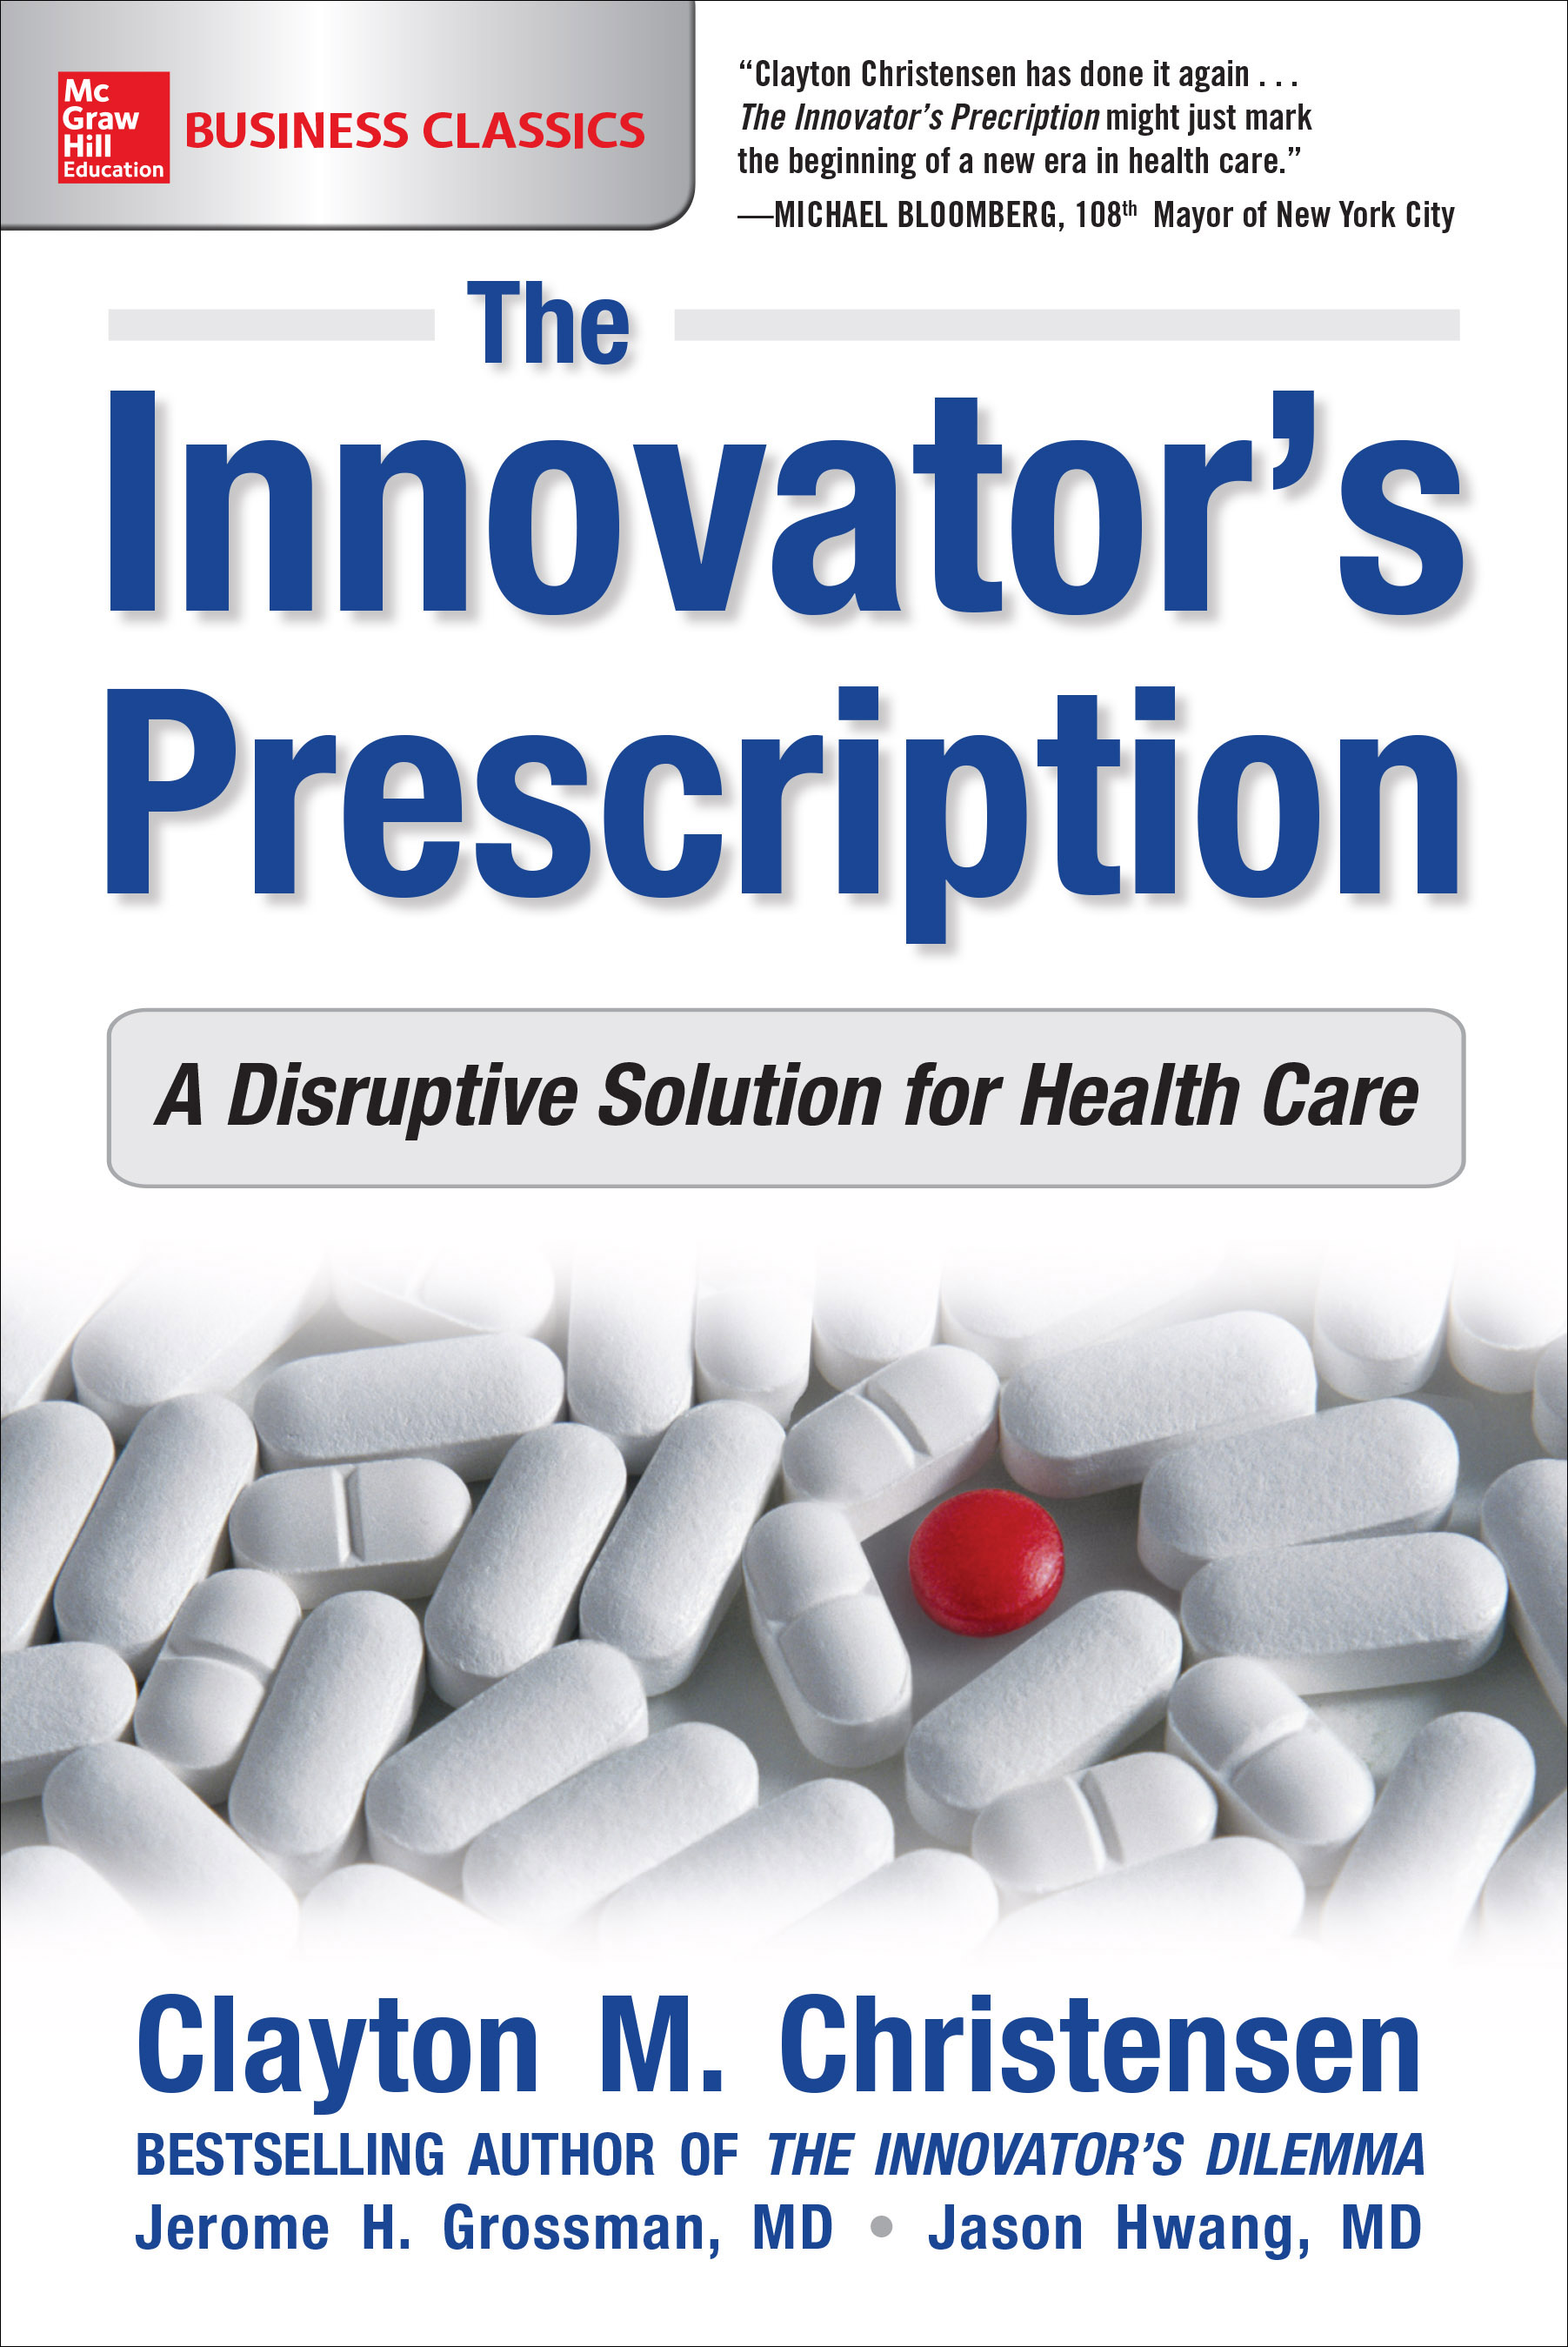 Download Ebook The Innovator's Prescription: A Disruptive Solution for Health Care by Clayton M. Christensen Pdf